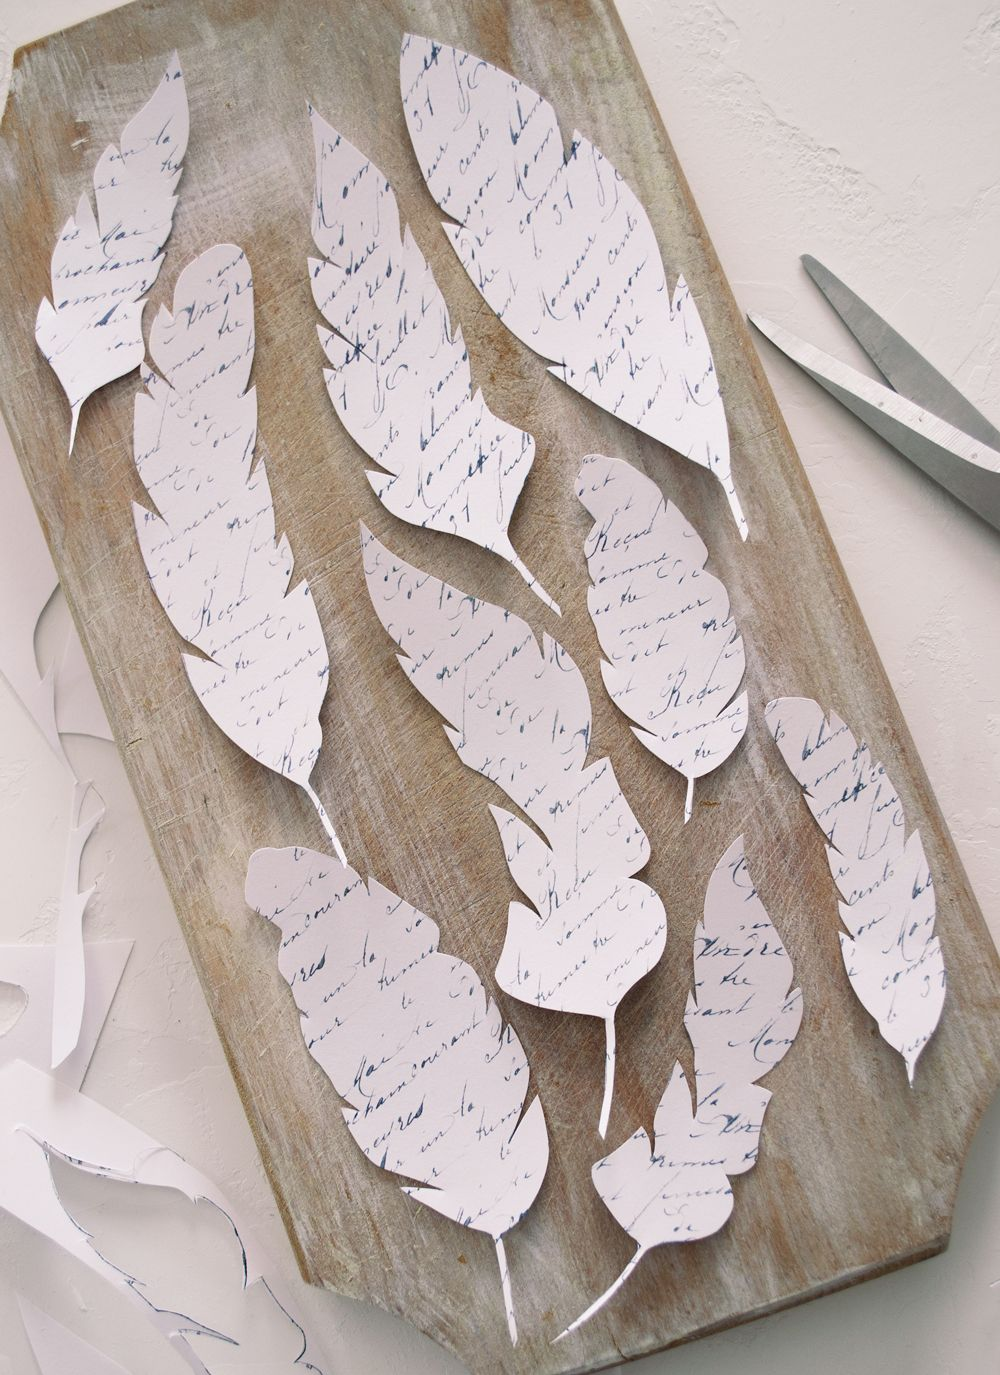 DIY French Script Paper Feathers Project + Free Printable. Great Home Decor  Project! By